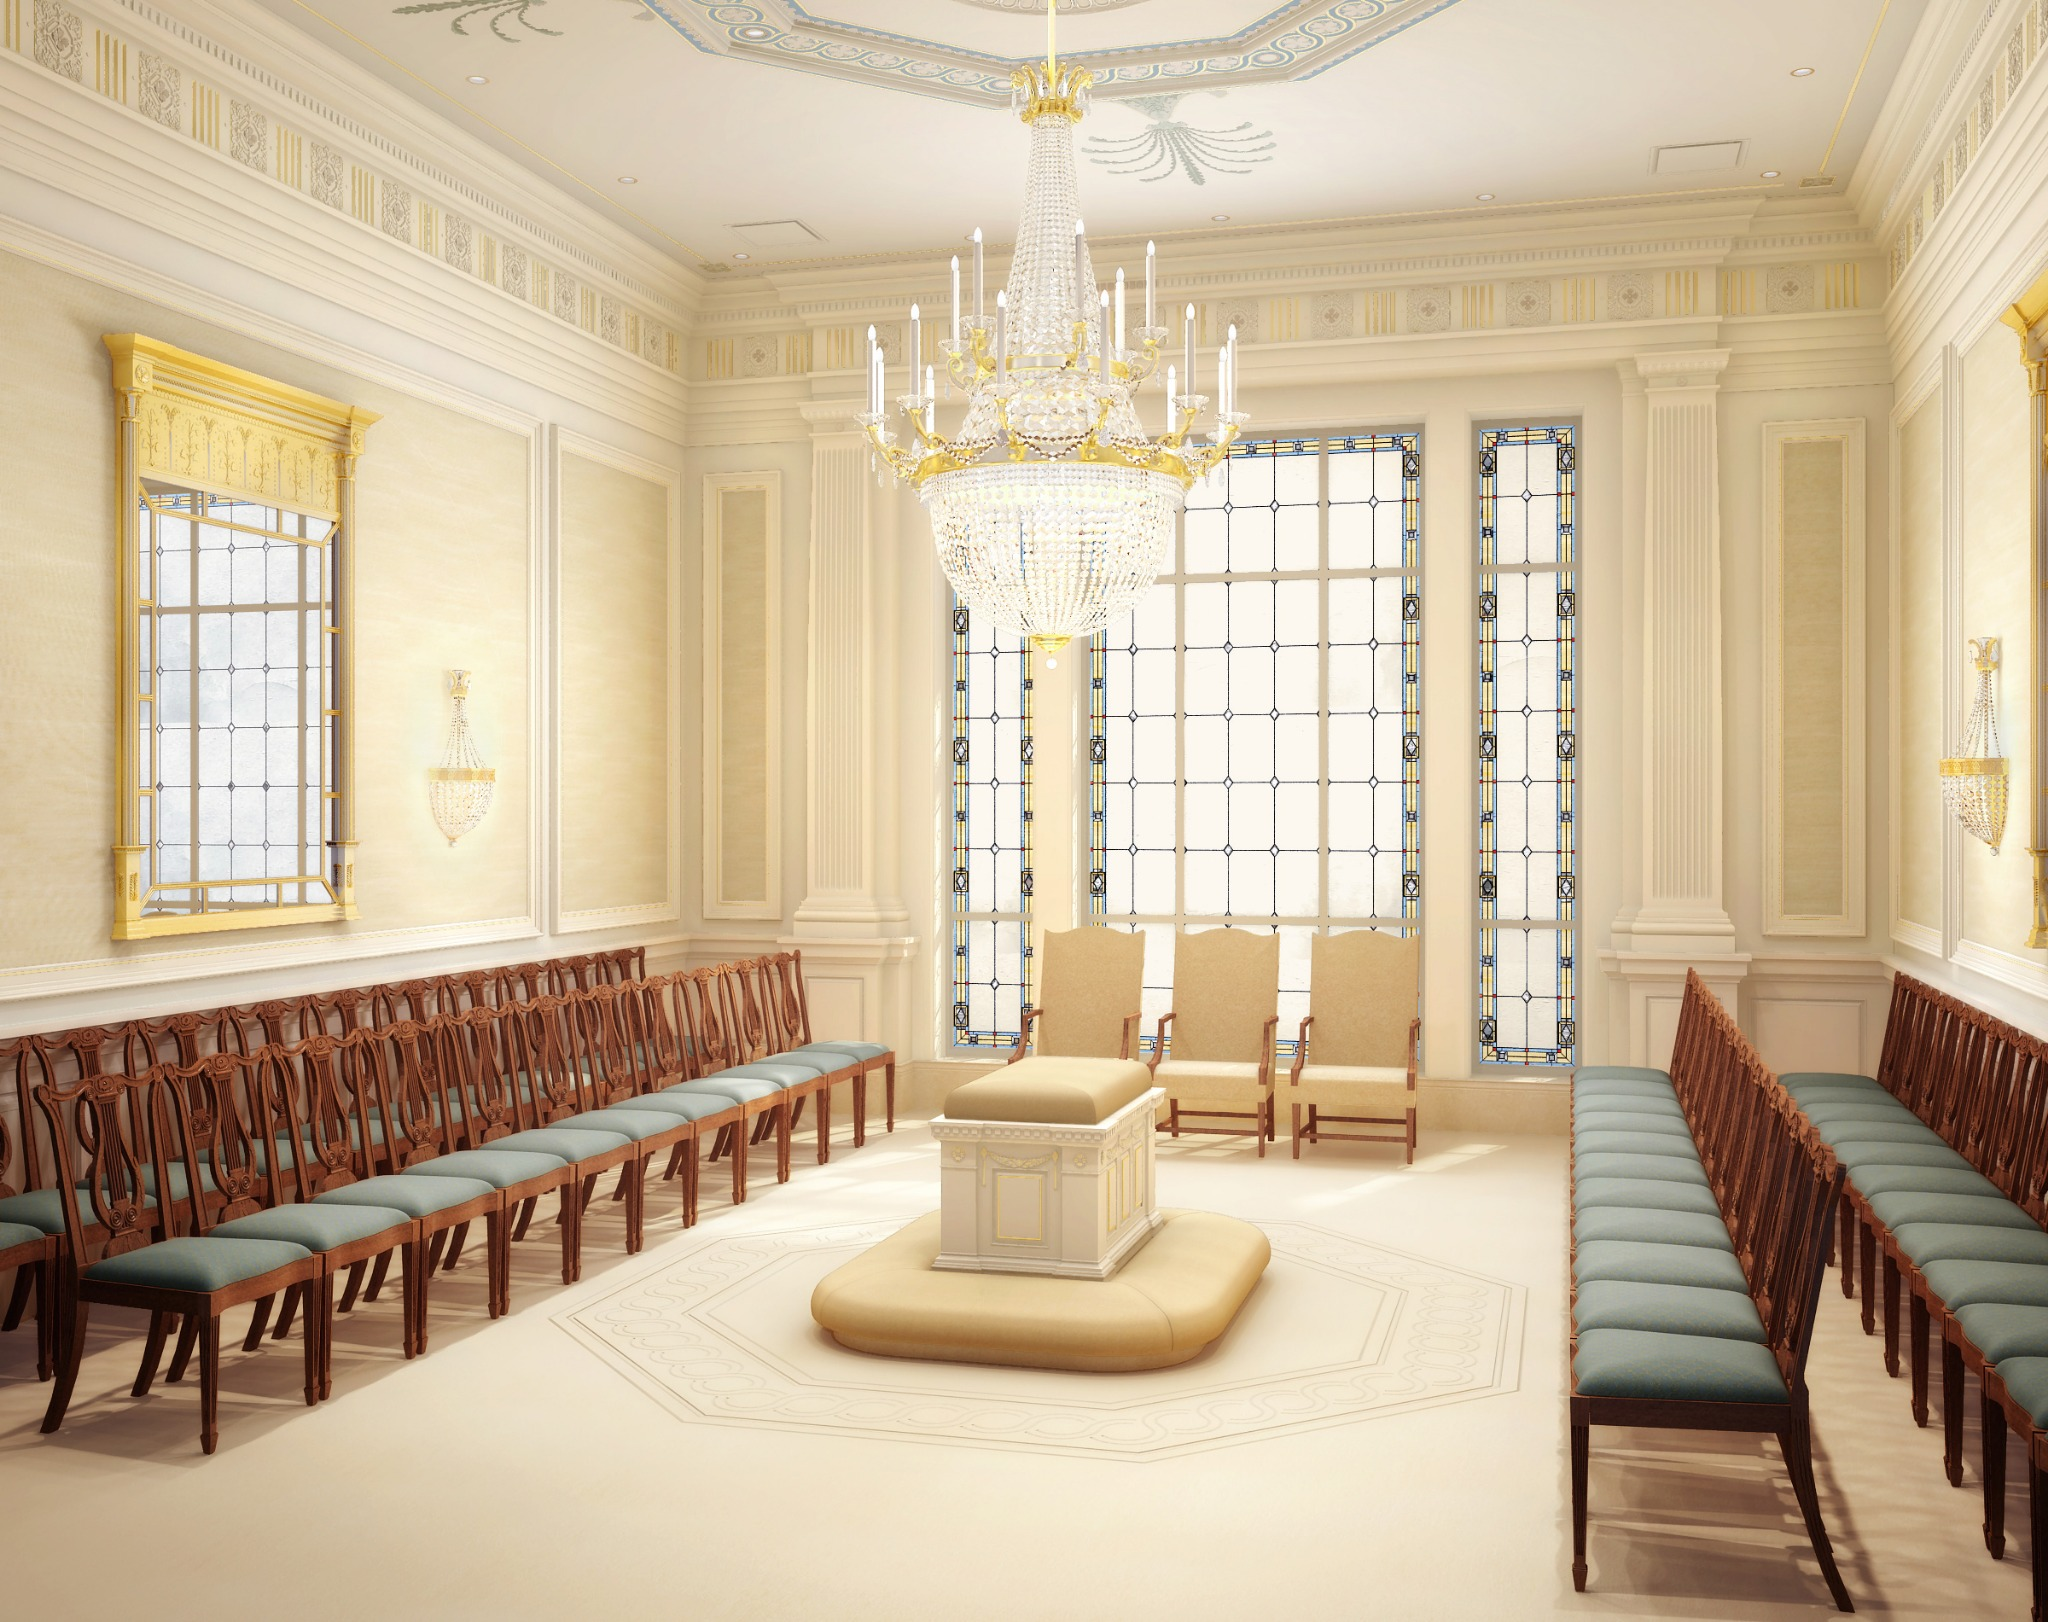 Rendering of a sealing room in the Richmond Virginia Temple